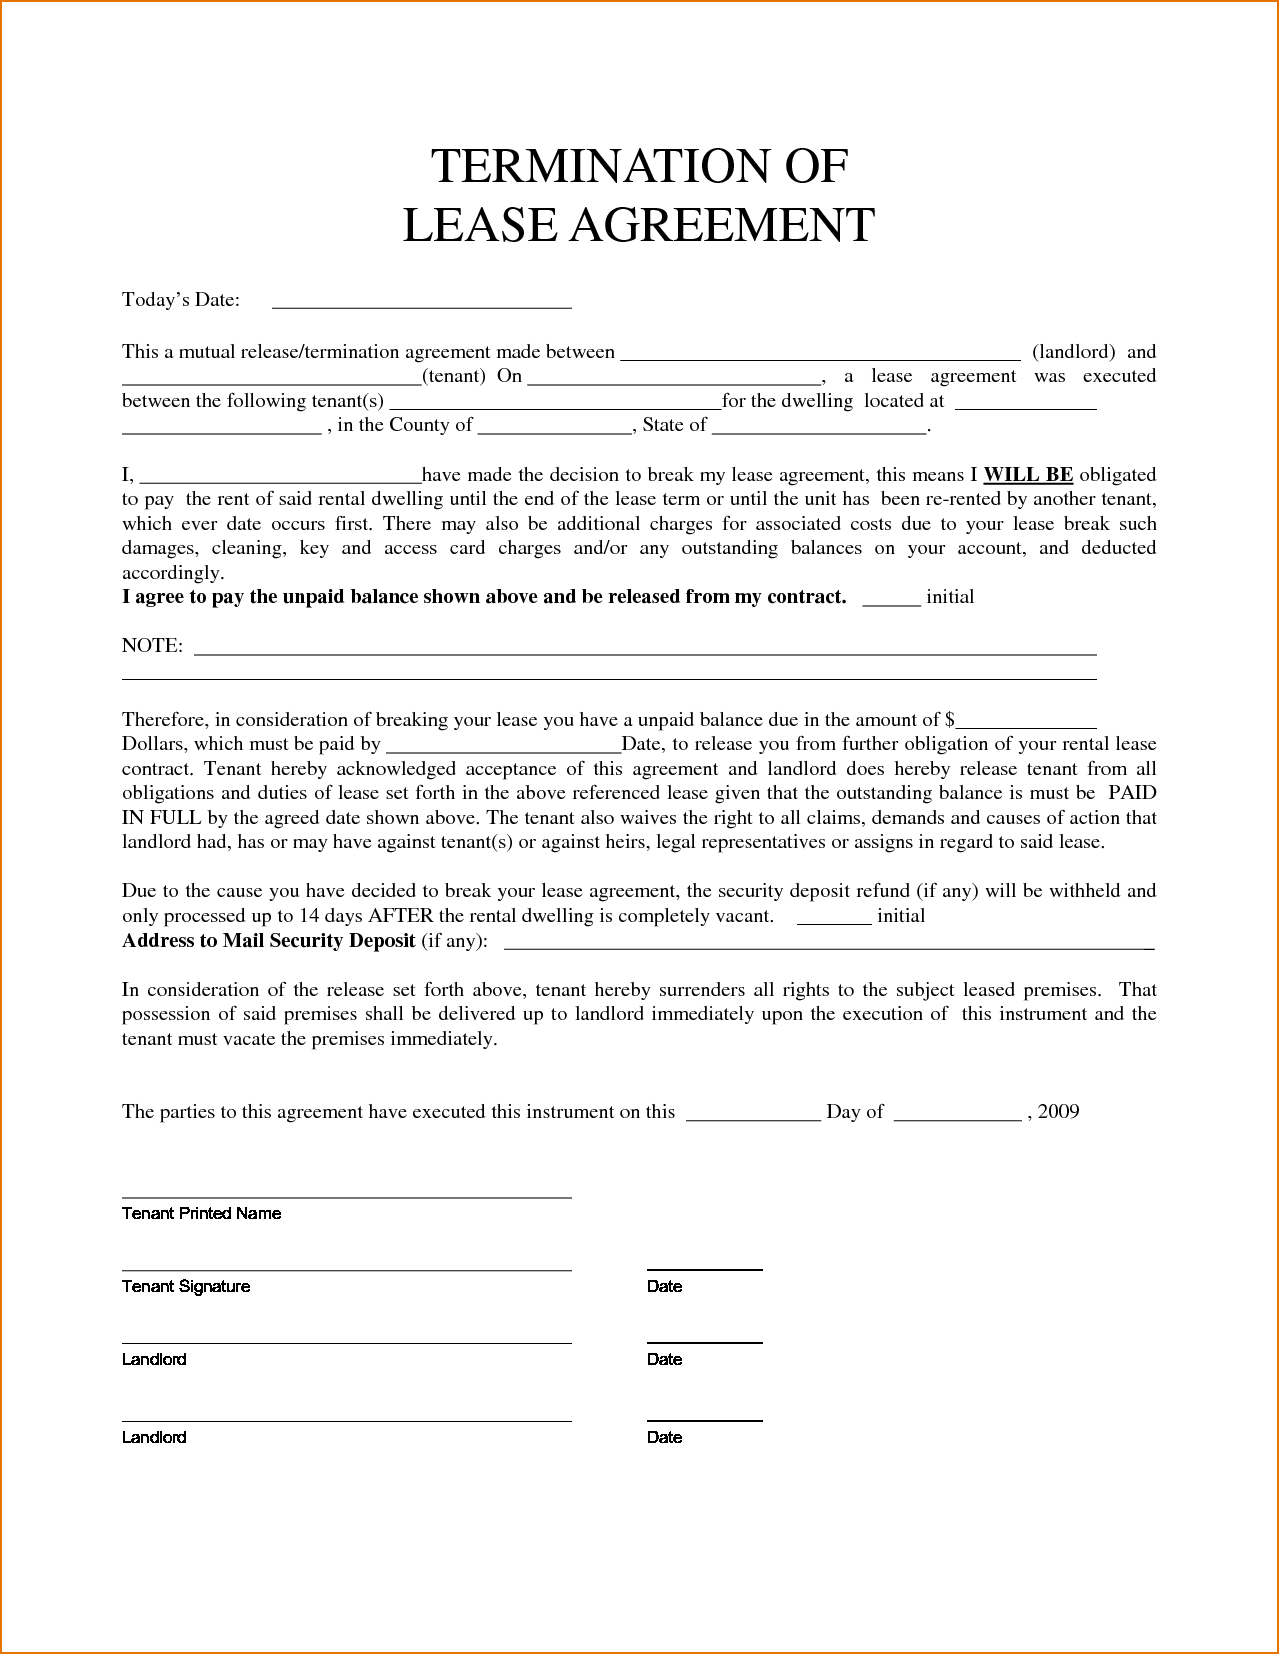 rental agreement forms property rentals direct termination lease renewal letter landlord best free home design idea inspiration - Landlord Lease Termination Letter Sample